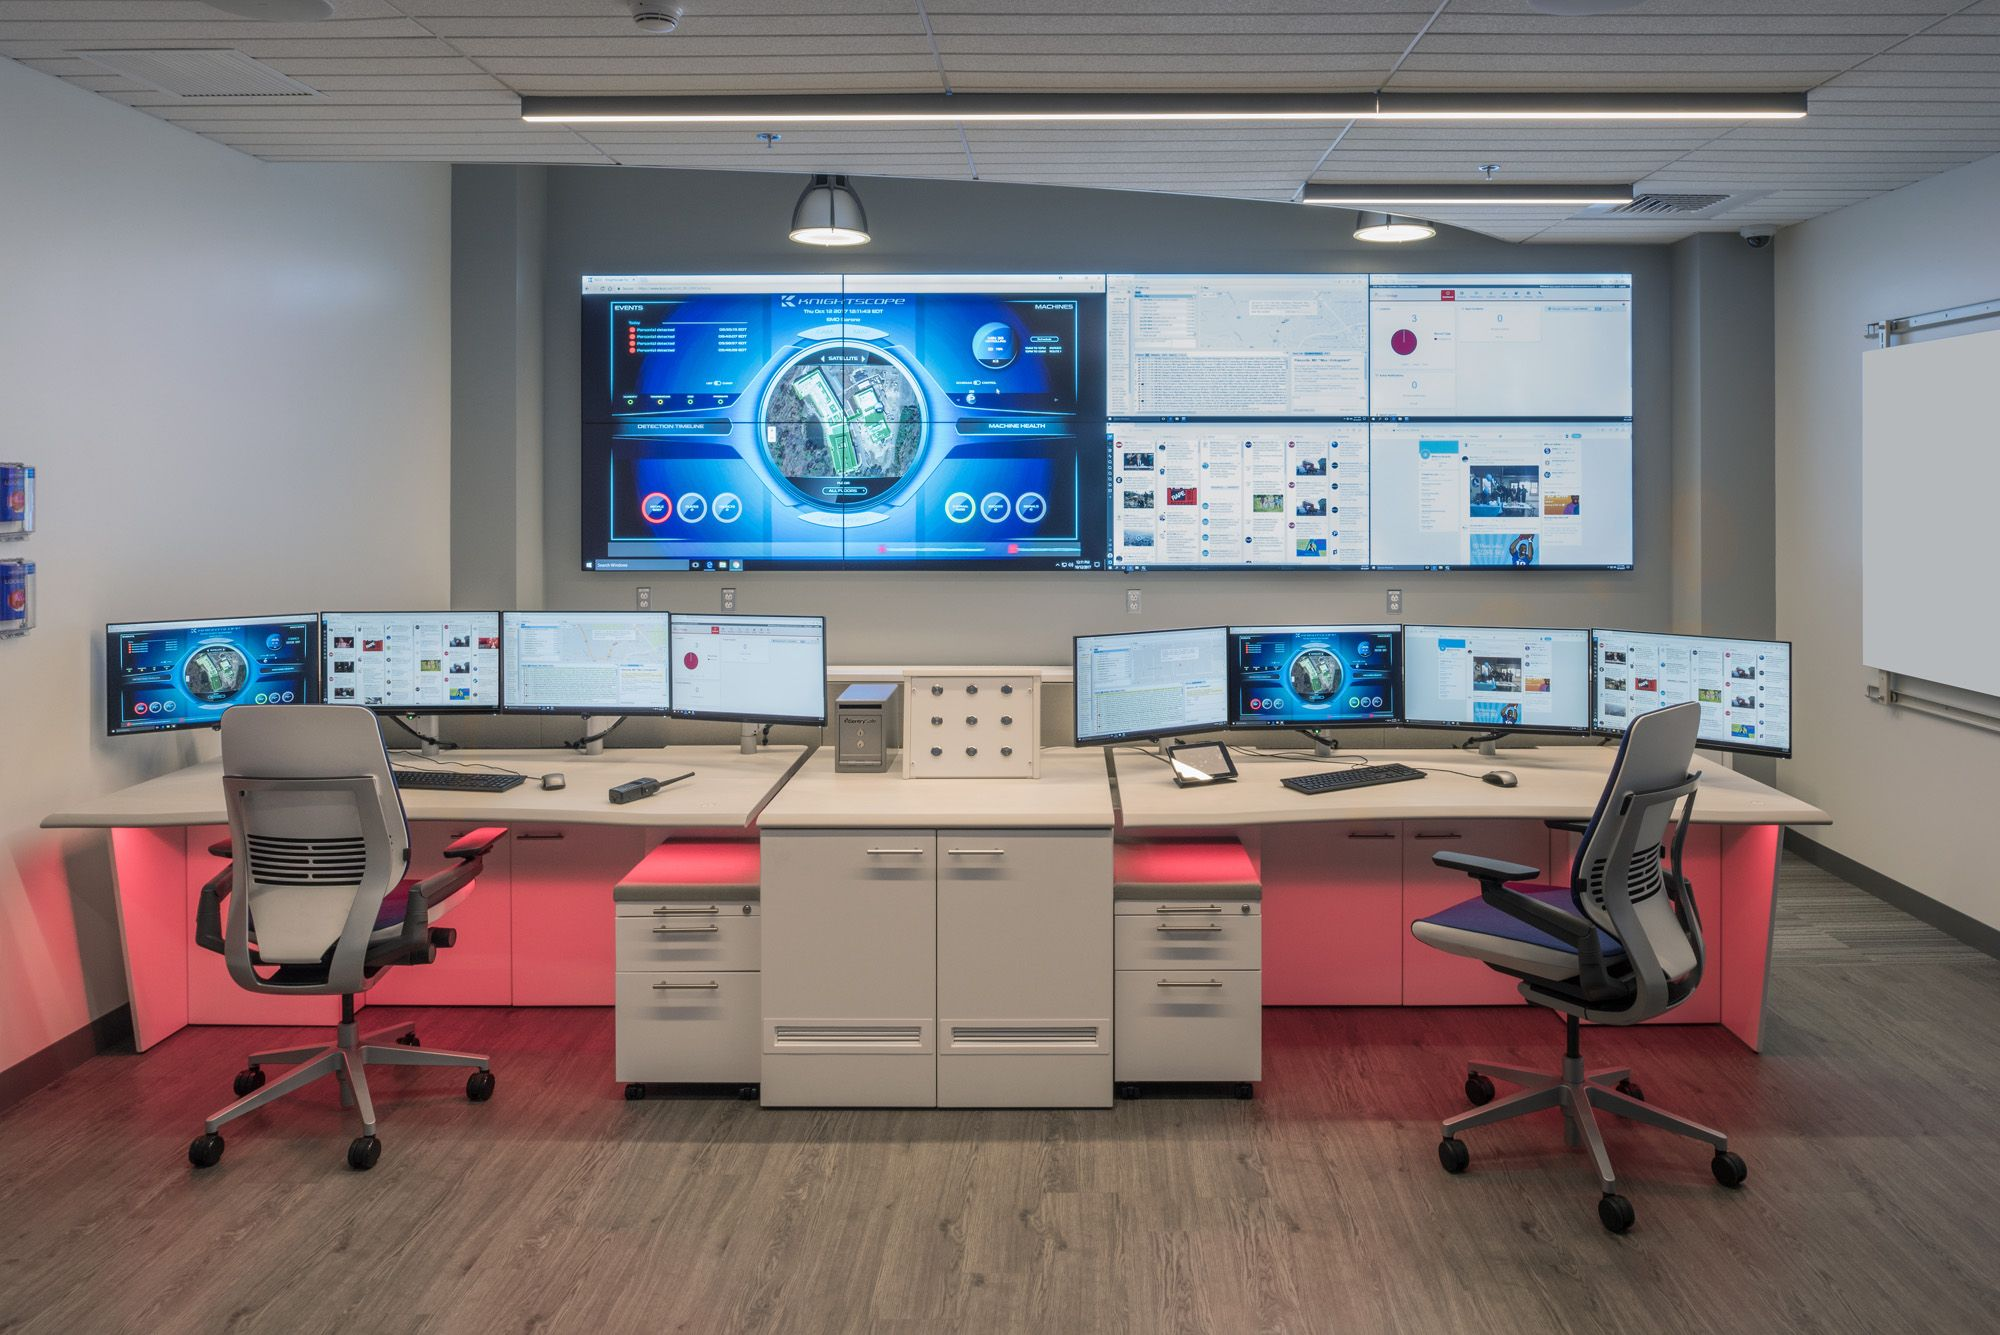 Showpiece Video Wall Integration and Command Center